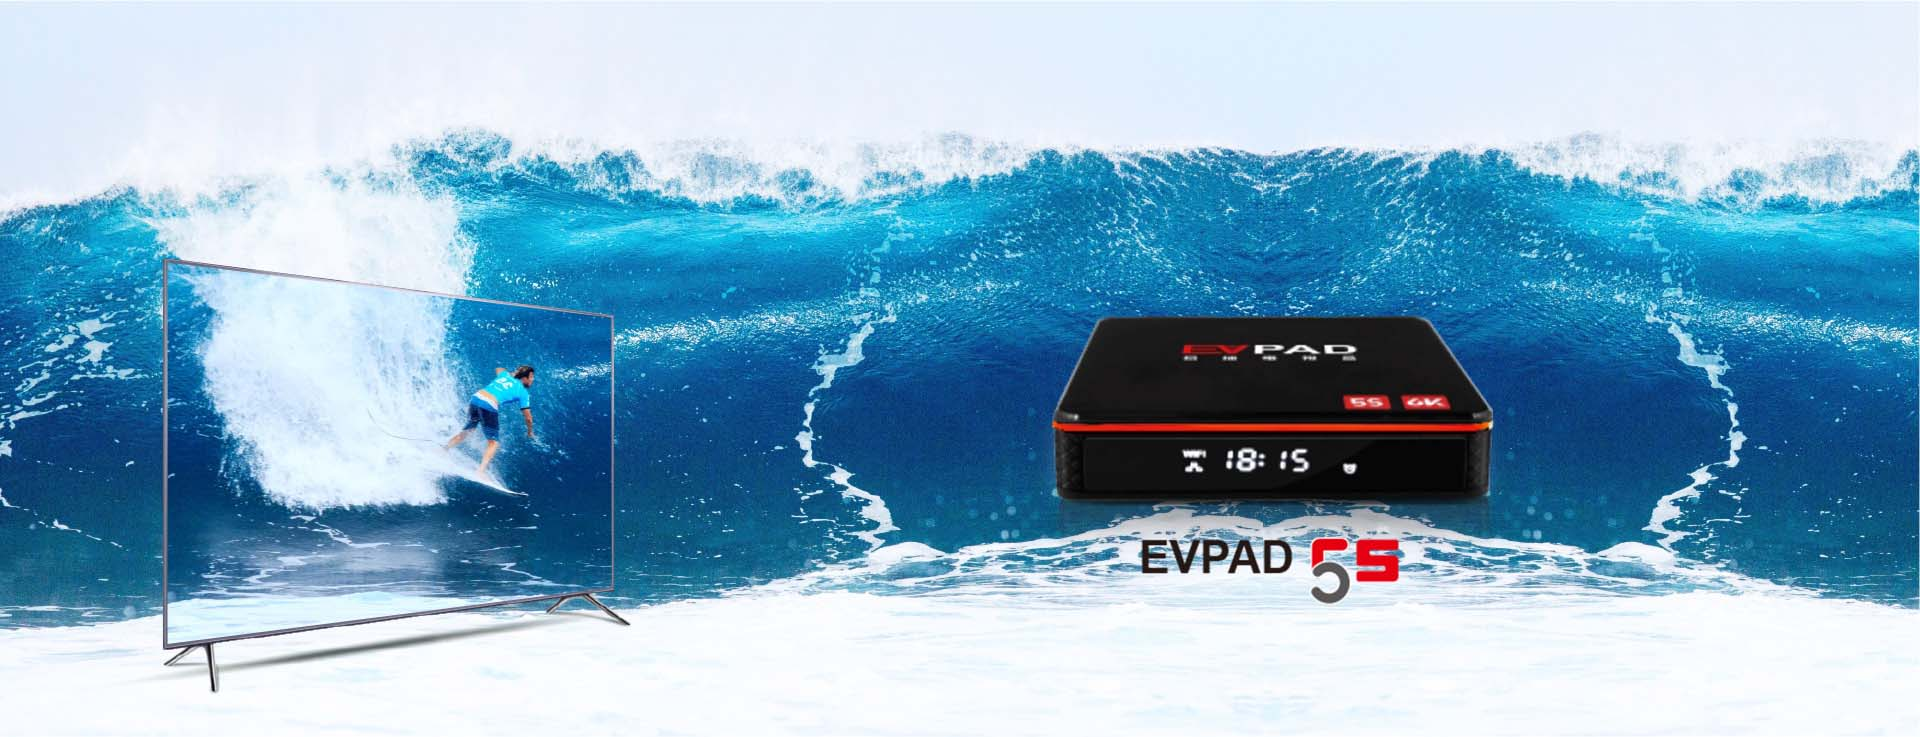 EVPAD TV Box in Thailand  - Massive TV Channels and Movies for You